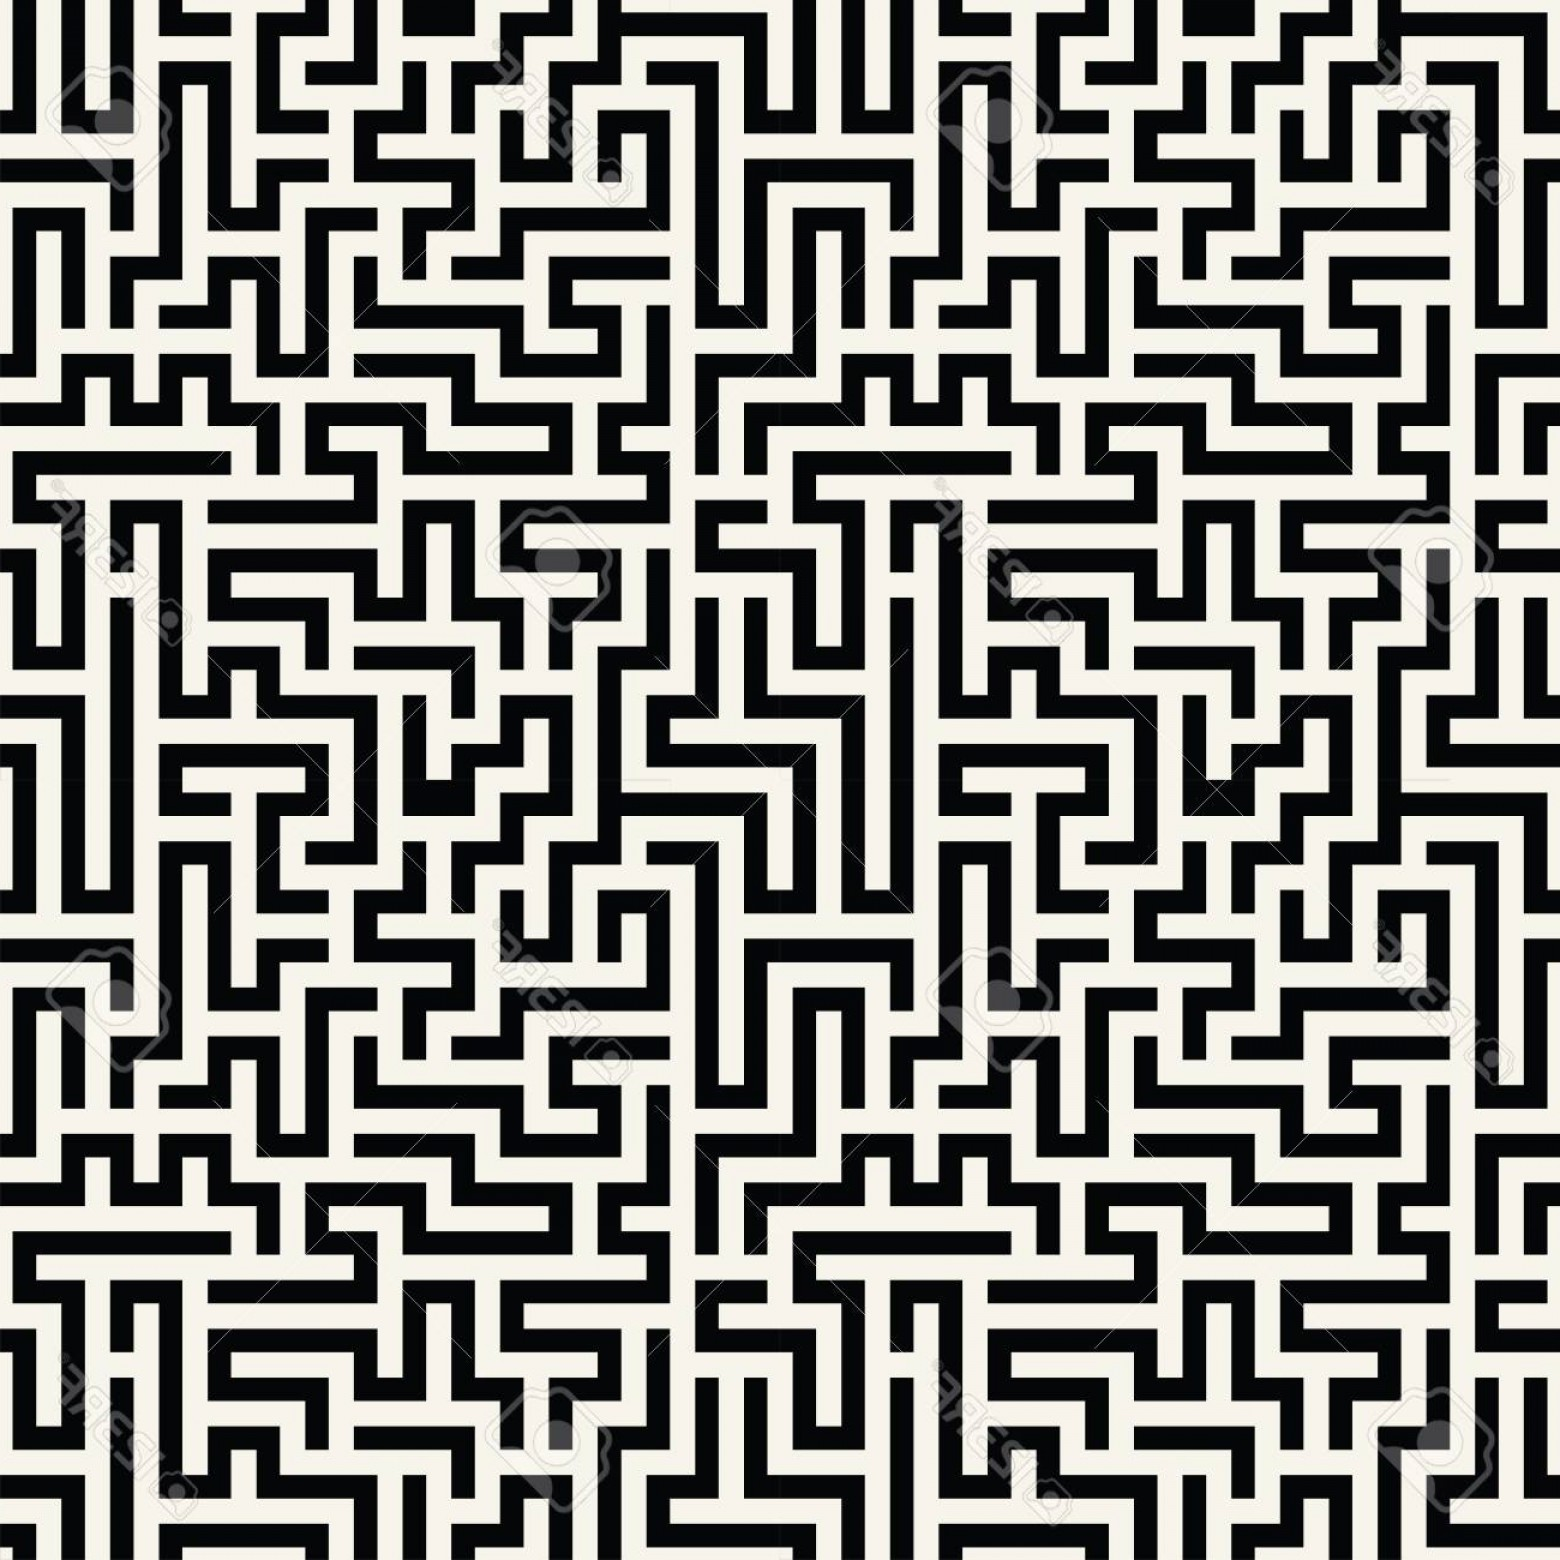 Maze Vector at GetDrawings com | Free for personal use Maze